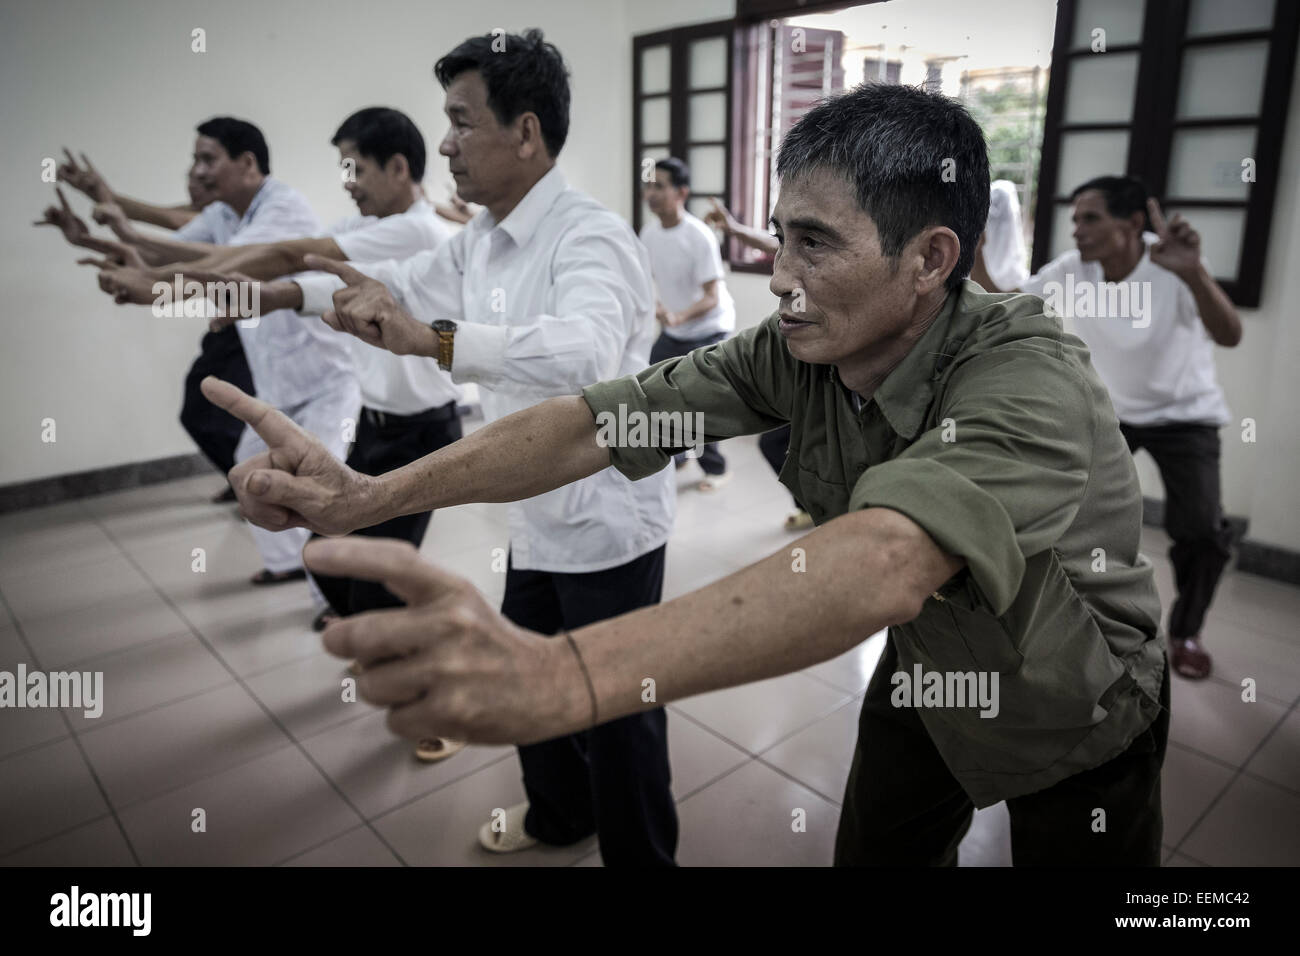 Several war veterans affected by Agent Orange attend an exercise class to improve your health with ailments. - Stock Image